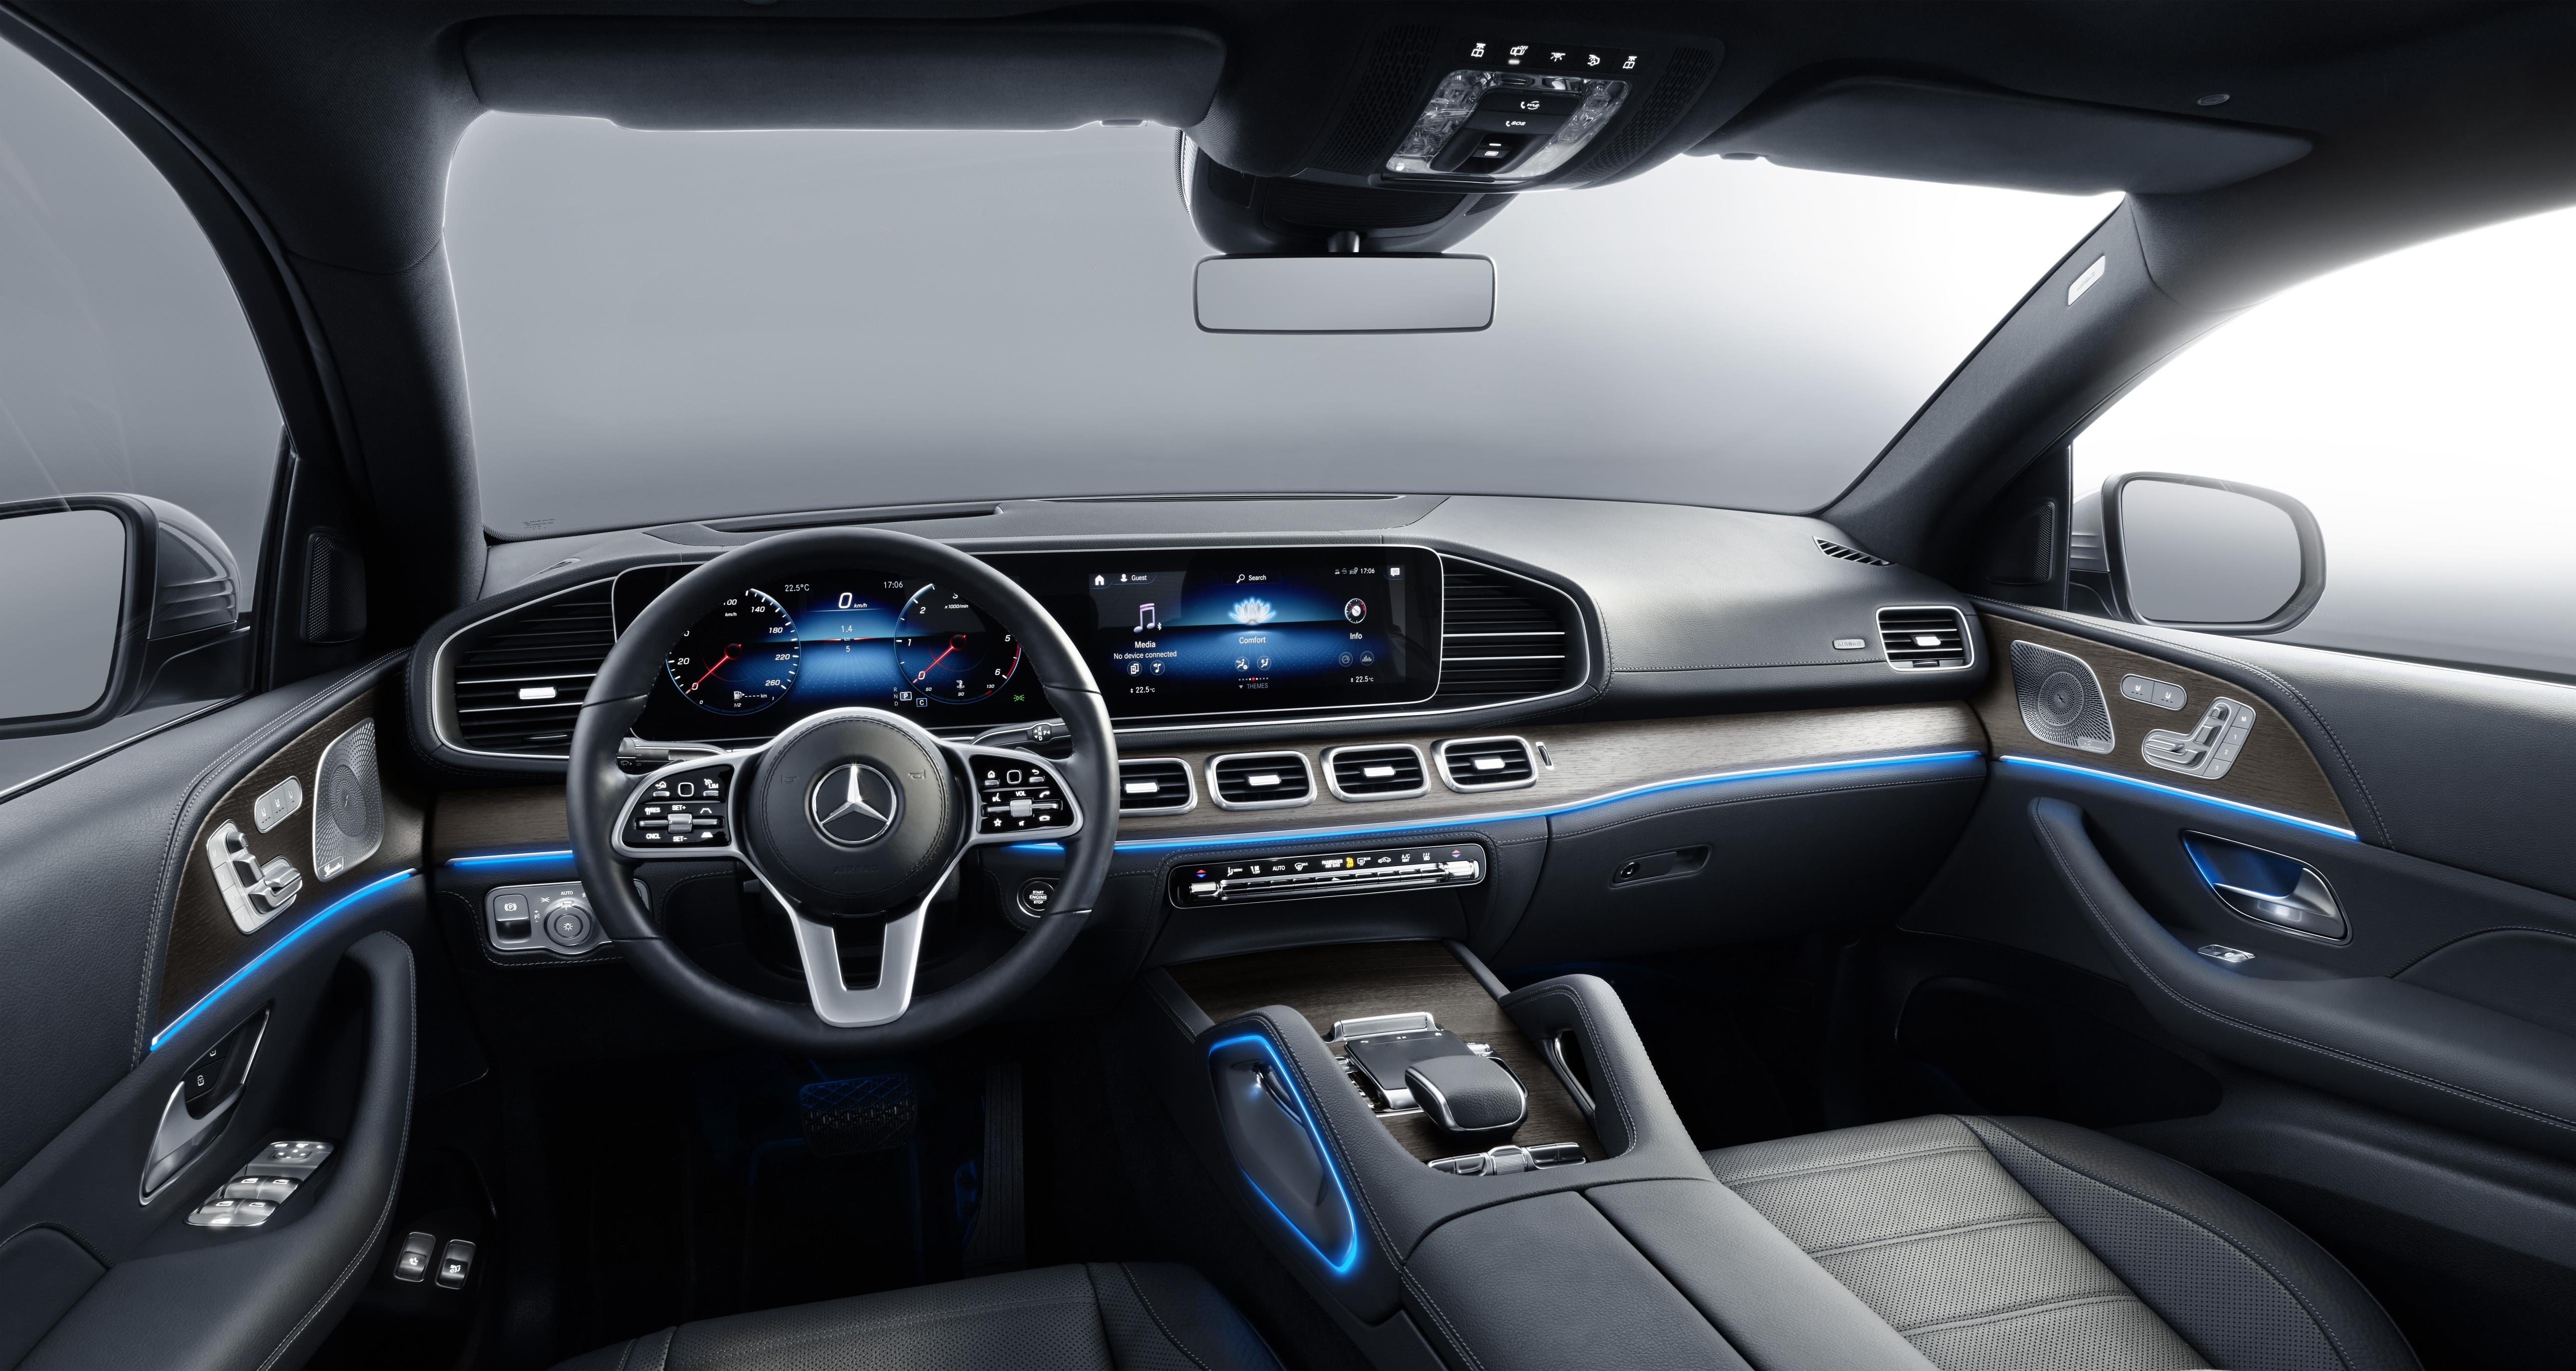 The Coupe's interior is near-identical to that of the regular GLE